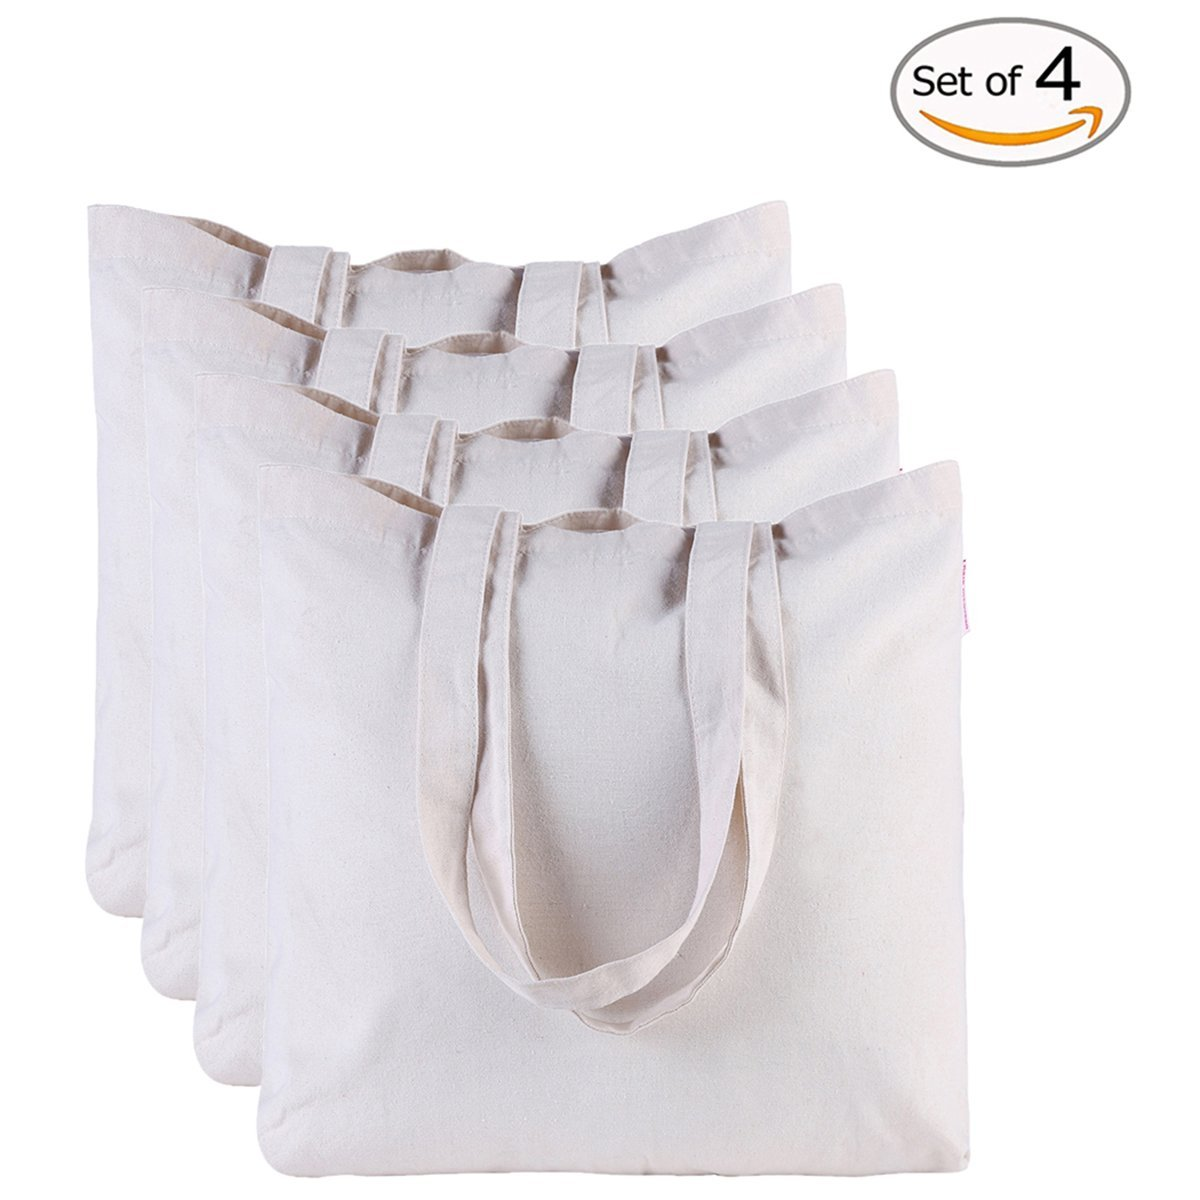 Make Fall keepsake crafts with these plain white canvas tote bags.